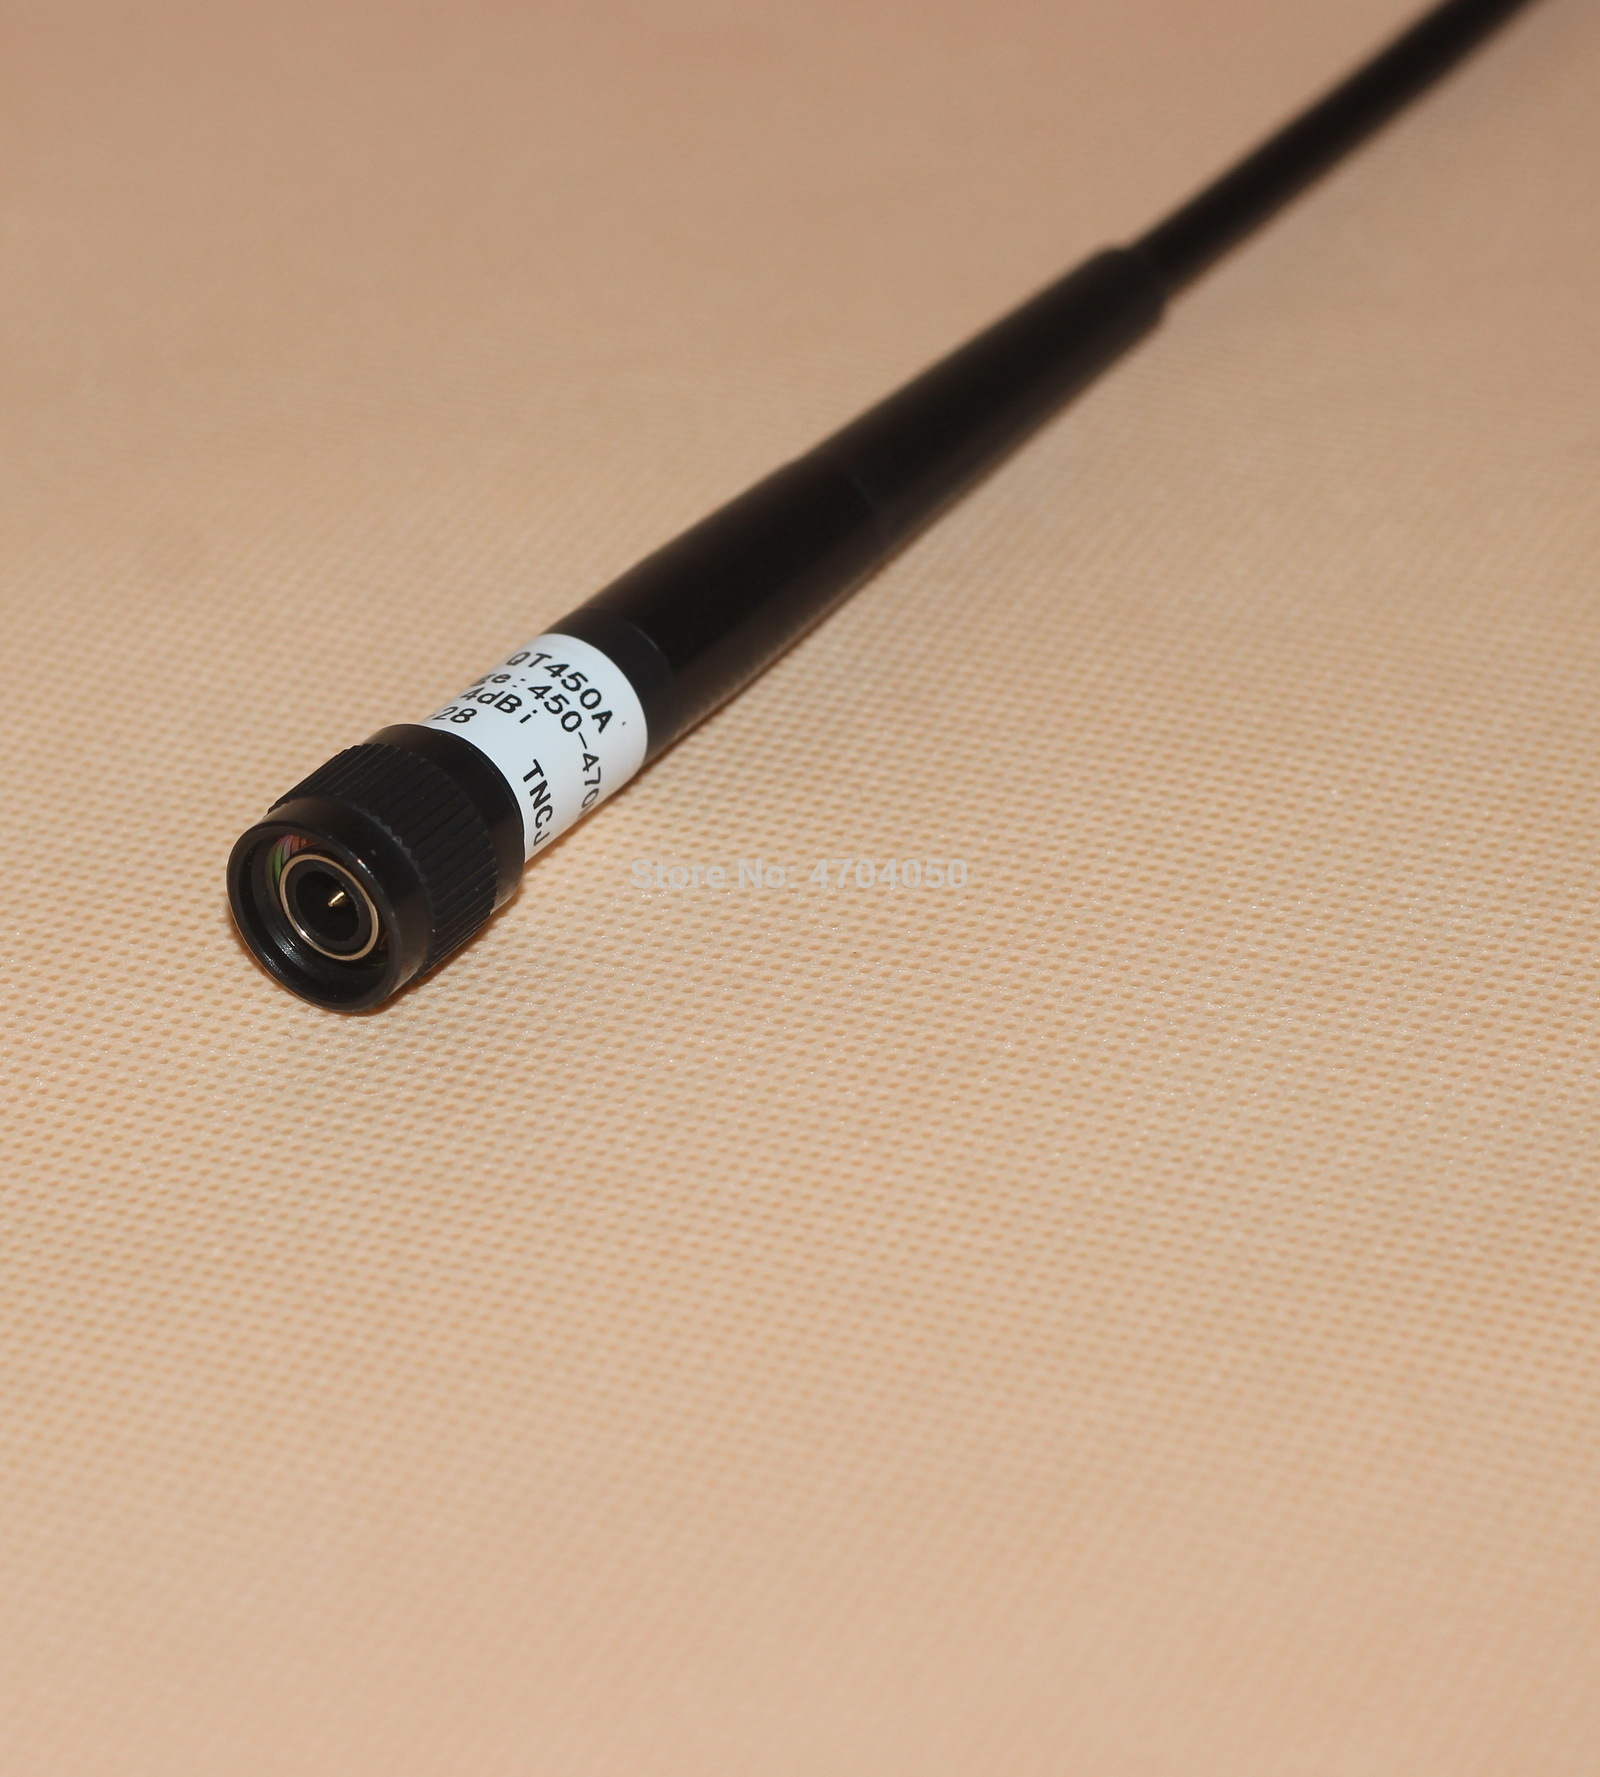 New Black Soft rod Antenna 450-470MHz High Frequency for leica Trimble Topcon South GPS Surveying Instruments, with TNC port